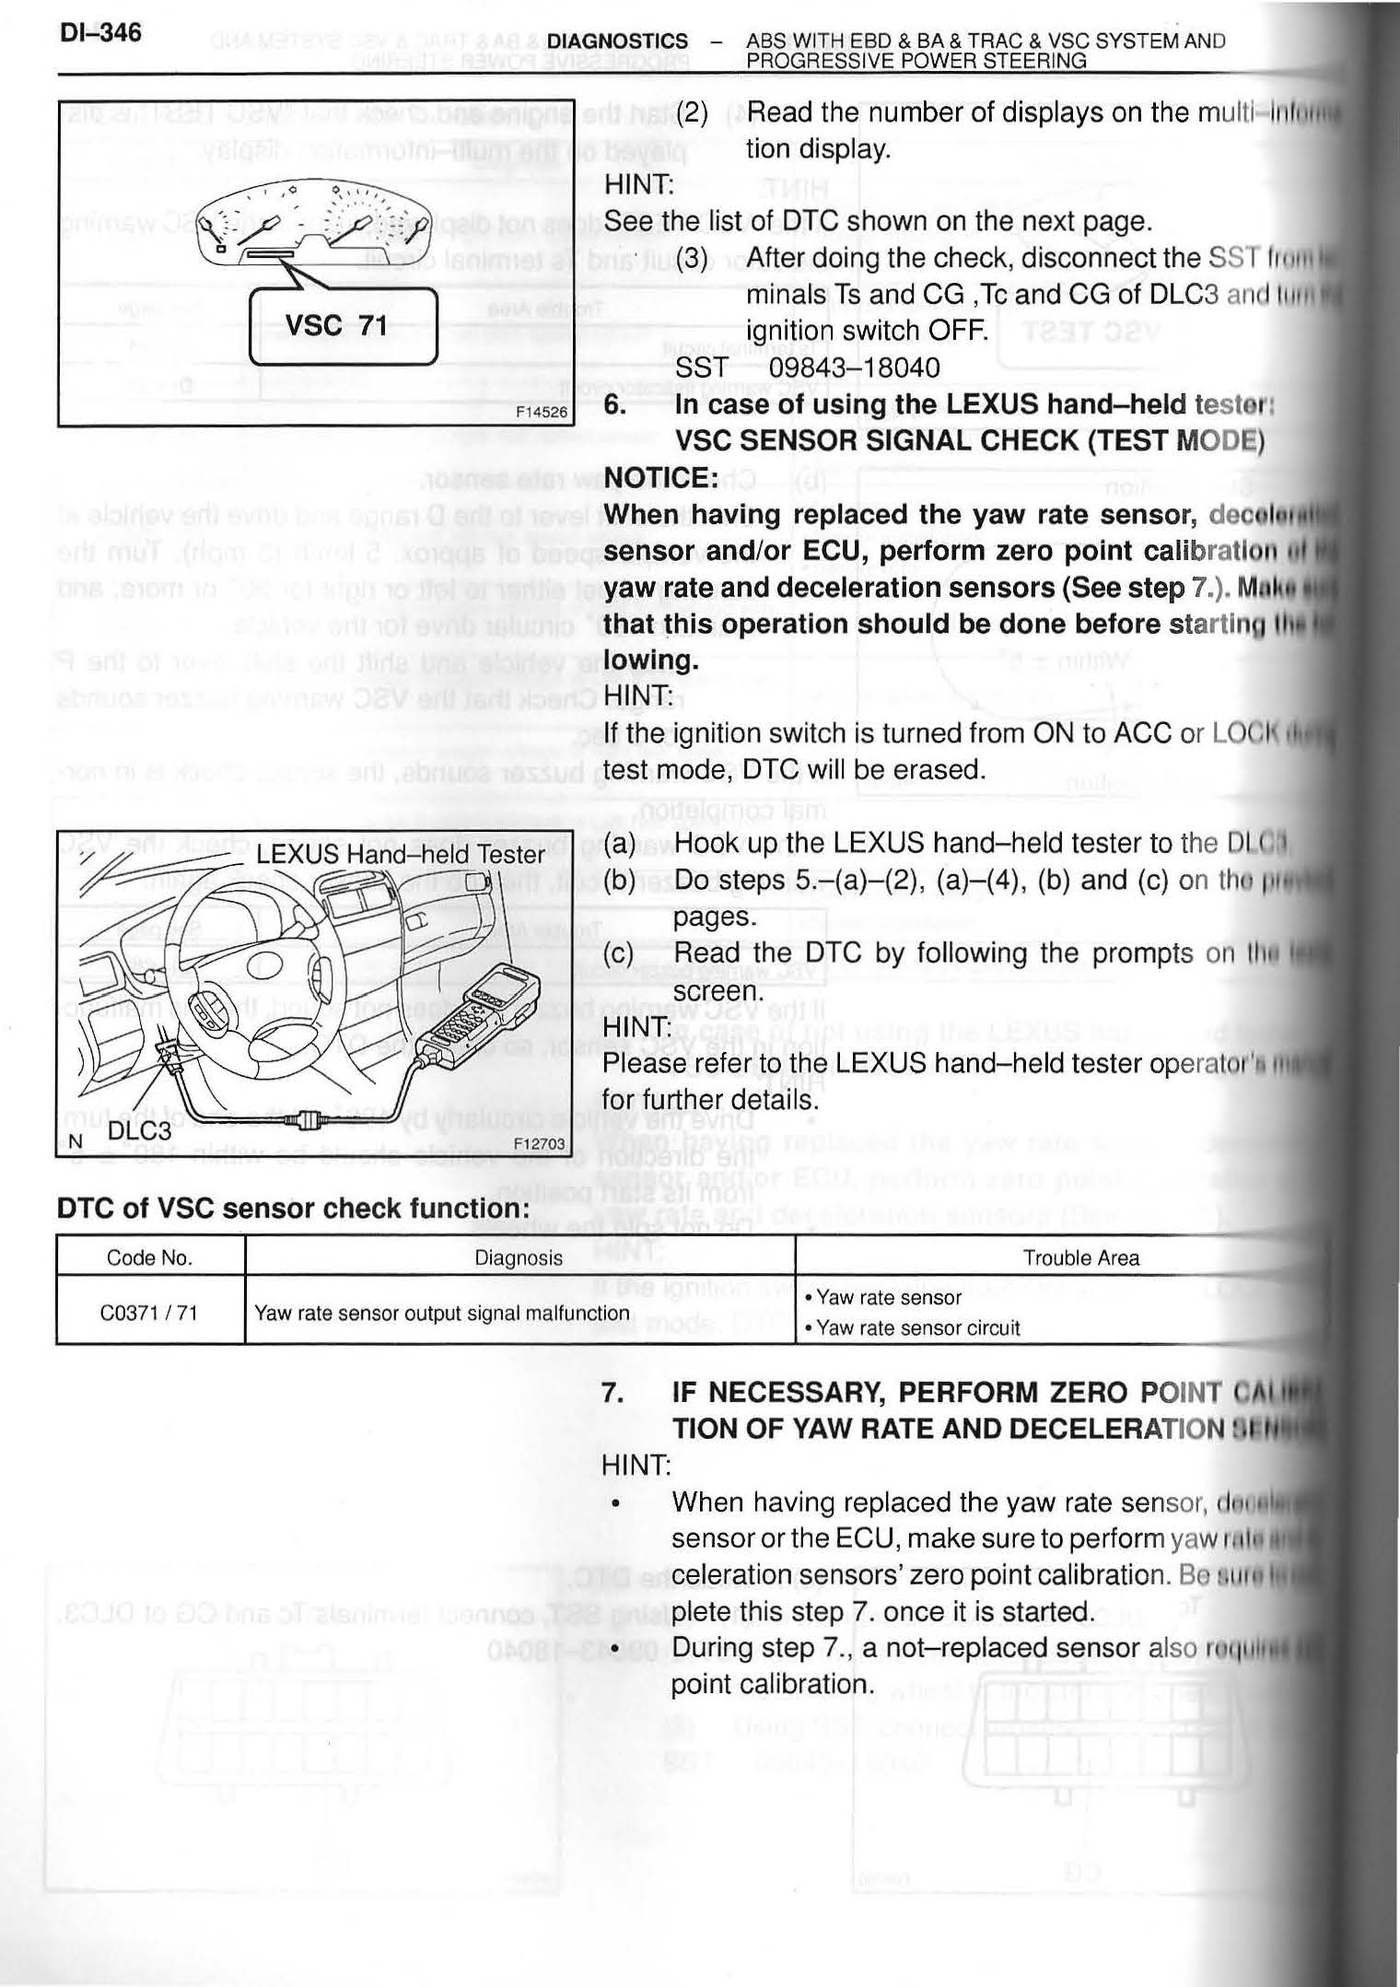 Chevrolet Sonic Repair Manual: Engine Block Cleaning and Inspection